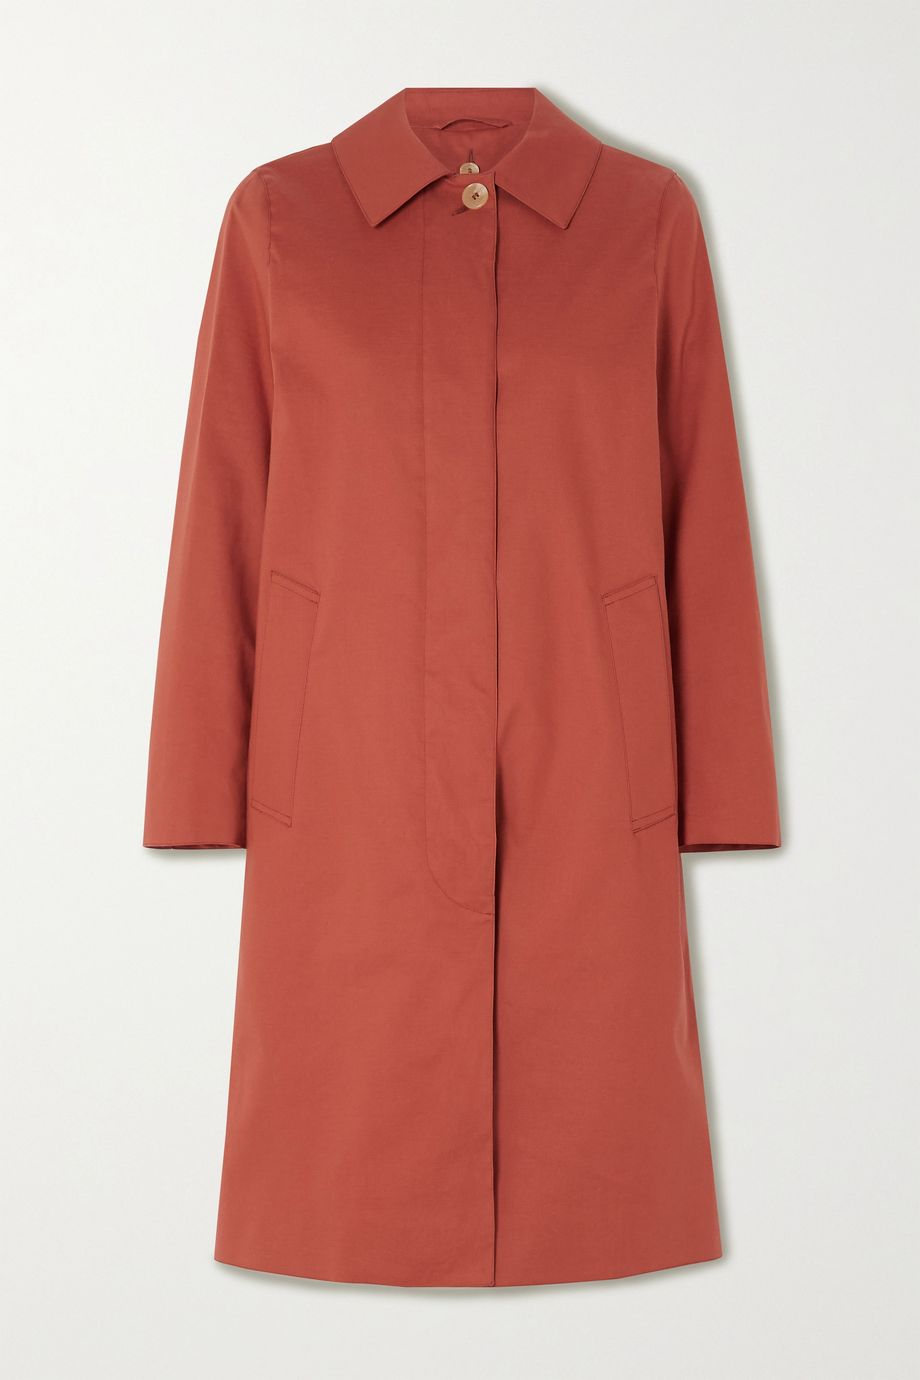 Mackintosh Dunkeld bonded cotton coat